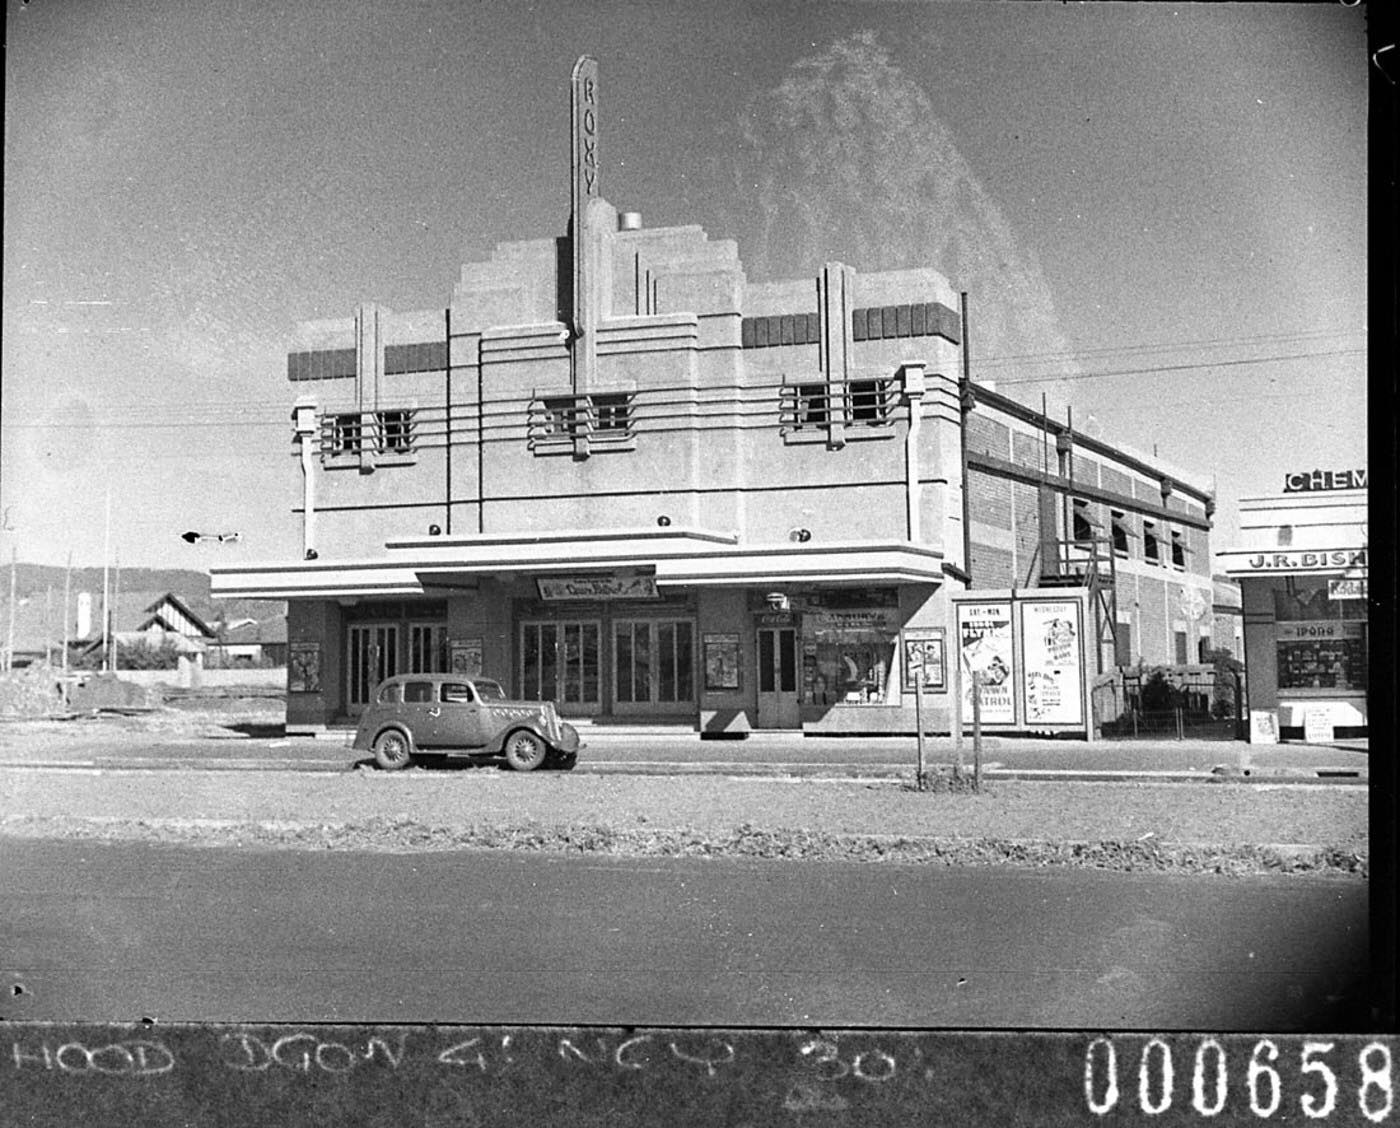 "Our beautiful studio captured 2 years after it originally opened as a picture theatre.   📷Photographer: Samuel John Hood *October 1939 File:SLNSW 12365 The Roxy Picture Theatre Everard Park South Australia taken for BHP on Adelaide Whyalla trip.jpg  ✨Did you know? The Roxy Centre originally opened in October 1937 and was built to cater for residents in the expanding Glandore district at the time with a seating capacity of just over 1,000. ""Piccadilly Jim"", a popular M.-G.-M. comedy, was presented as the feature on the bill for the gala premiere."